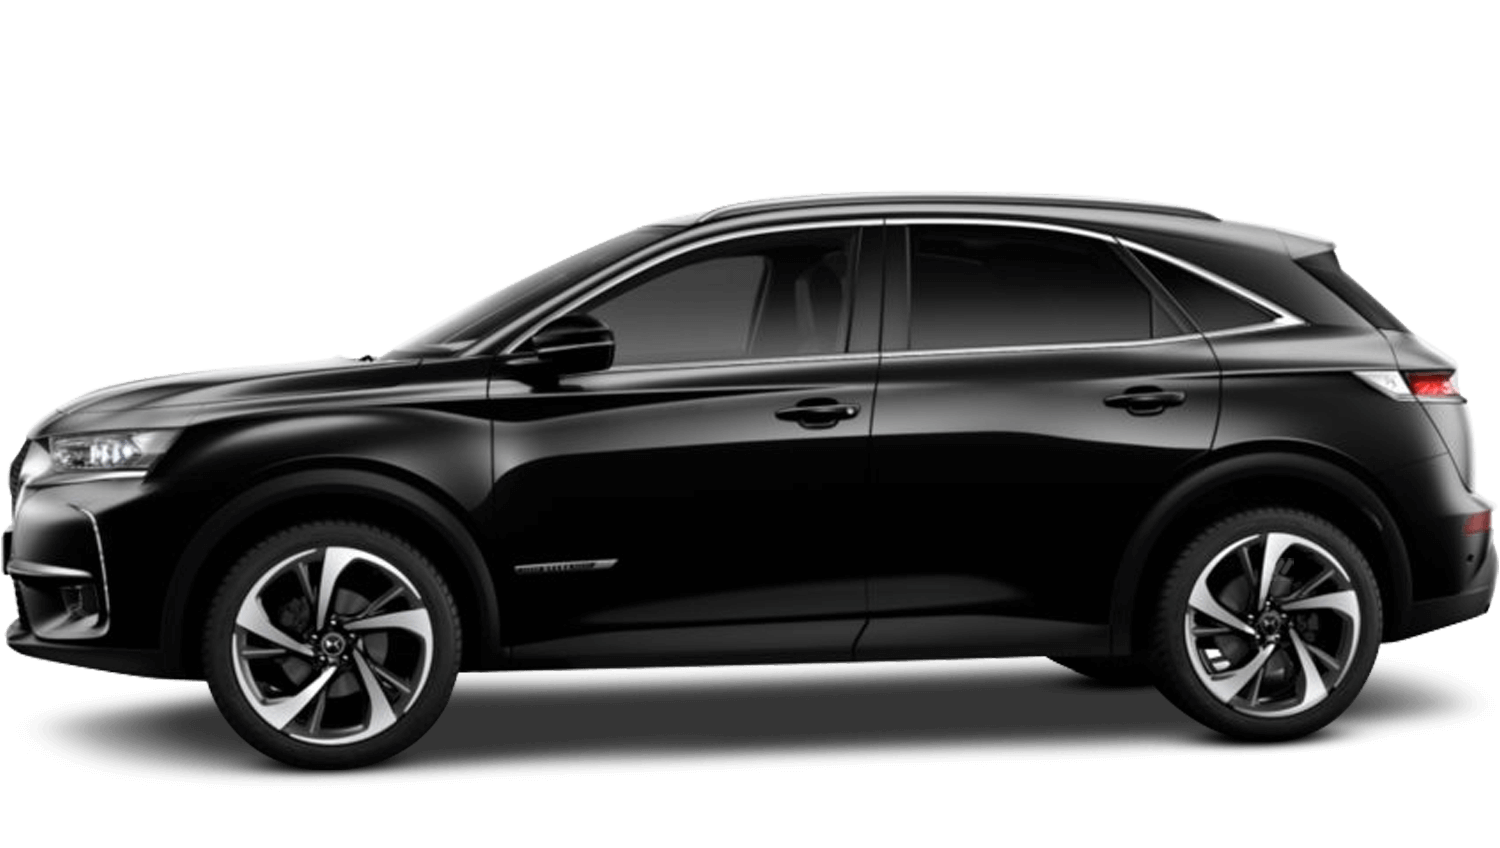 Perla Nera Black (Metallic) DS DS 7 Crossback